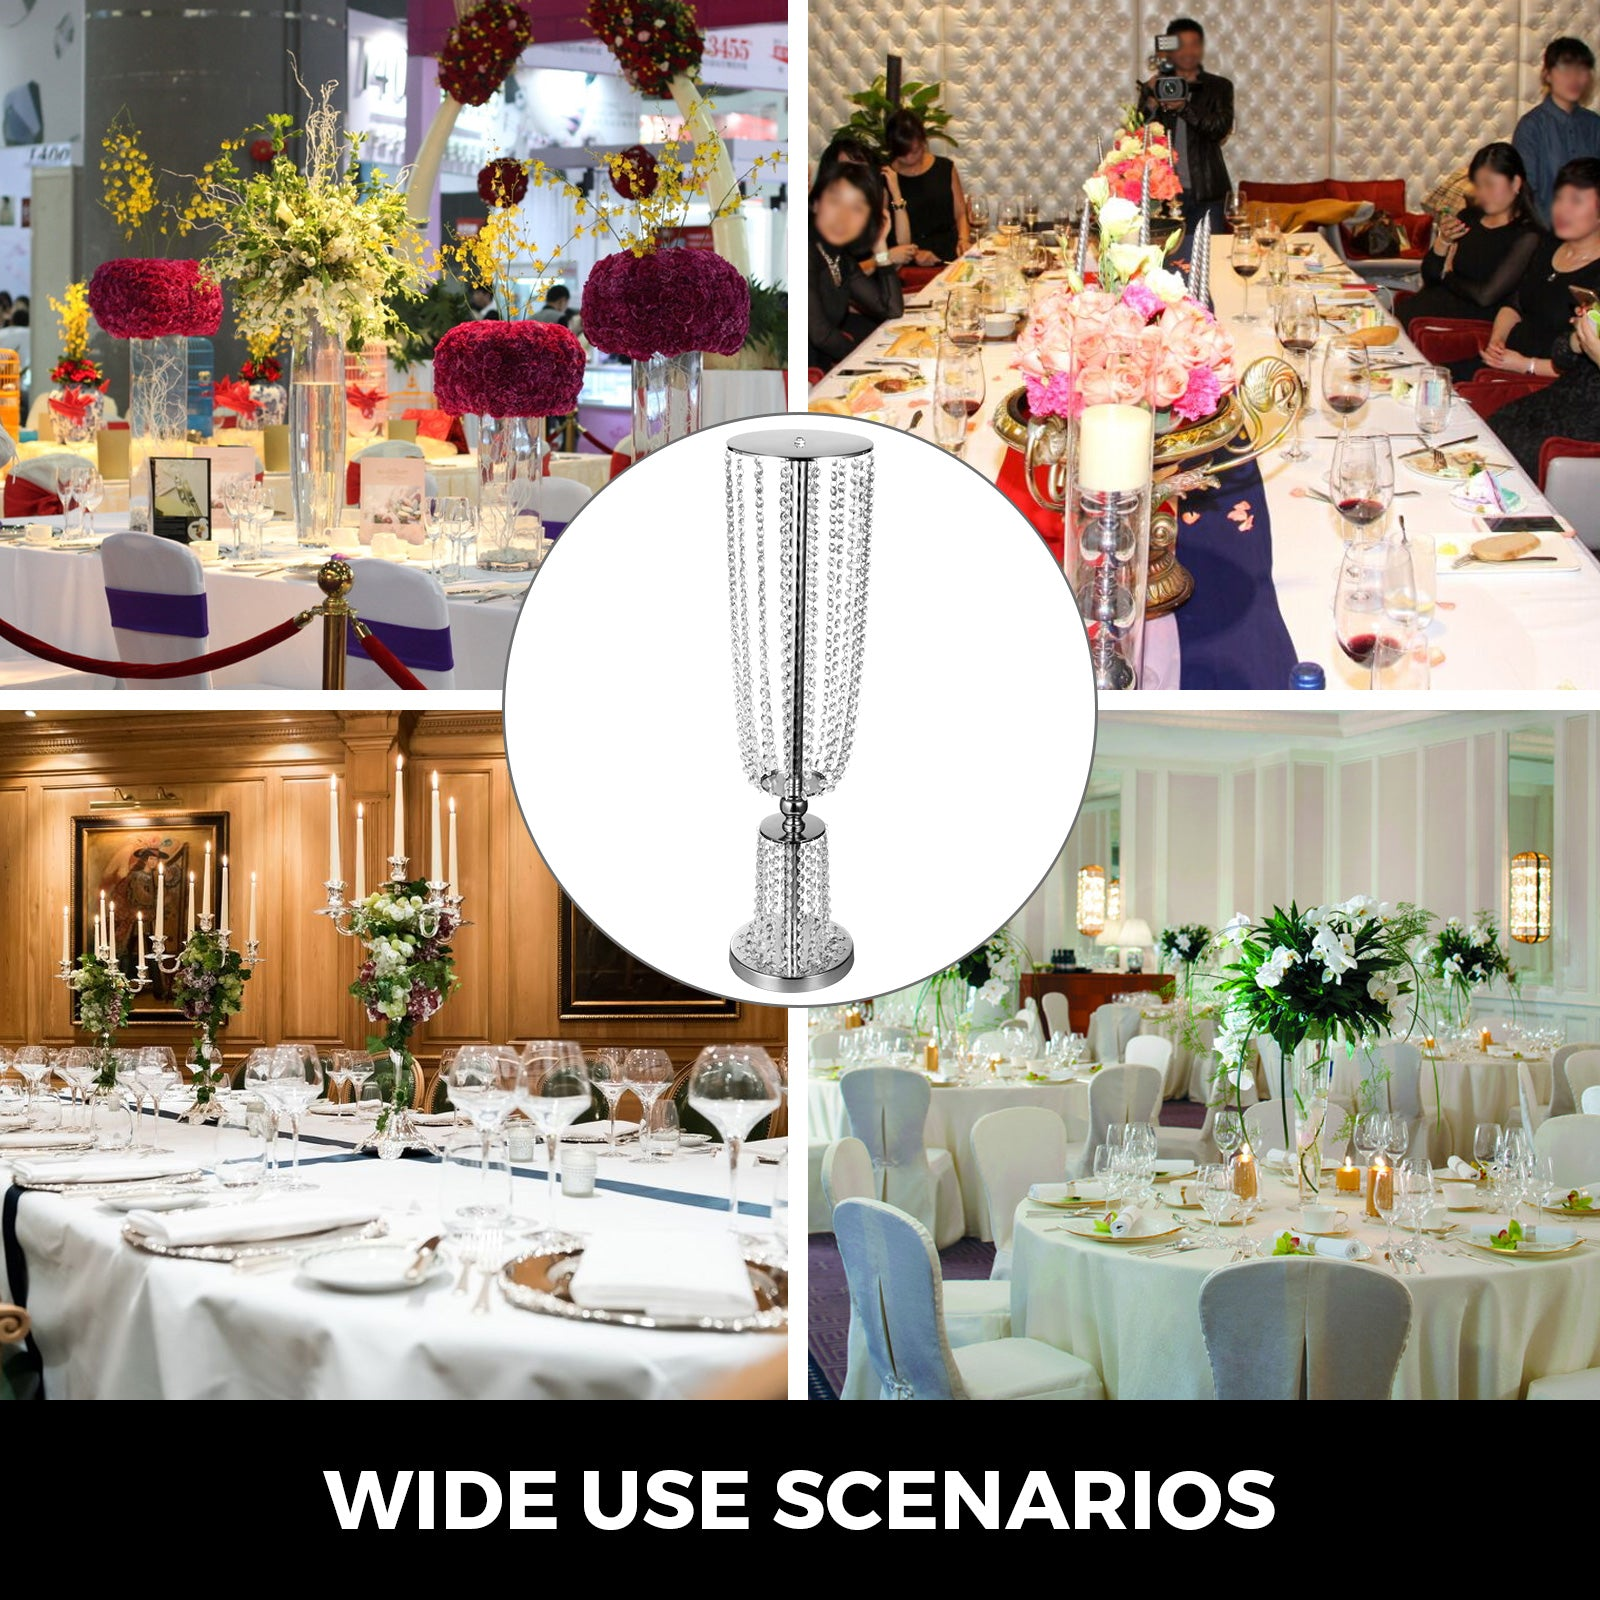 Tall Wedding Centerpieces Crystal Centerpieces For Wedding Table 2 Flower Stands